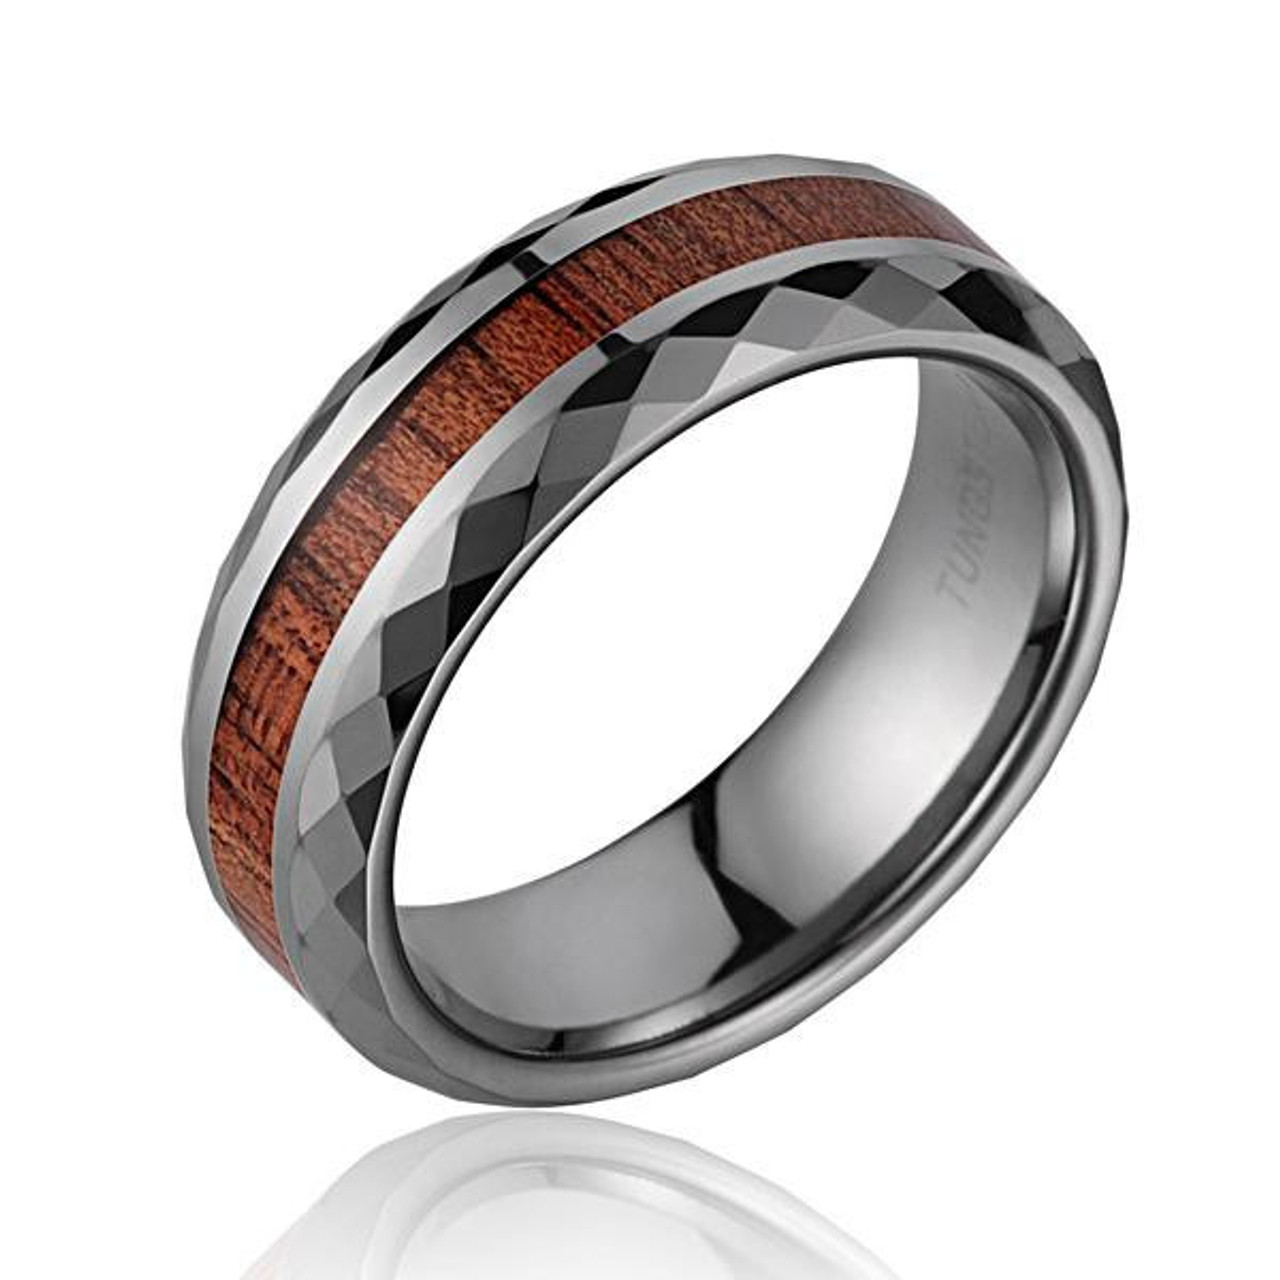 Diamond Faceted Men S Tungsten Wedding Band With Koa Wood Inlay